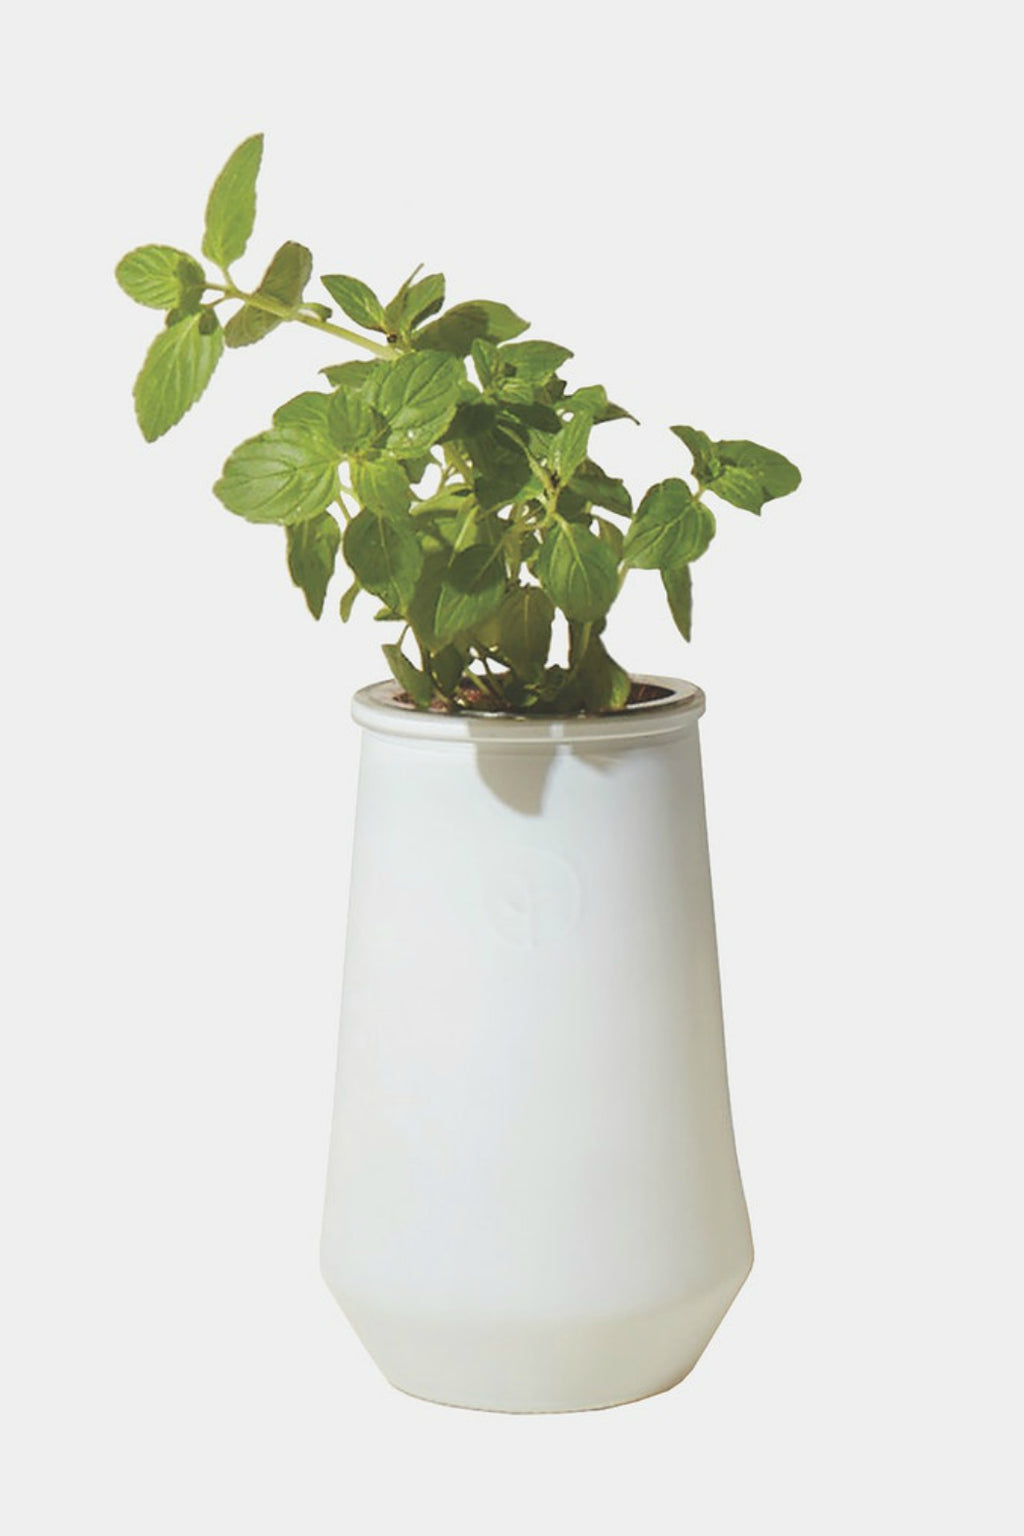 Modern Sprout White Tapered Tumbler Hydroponic Grow Kit - Mint